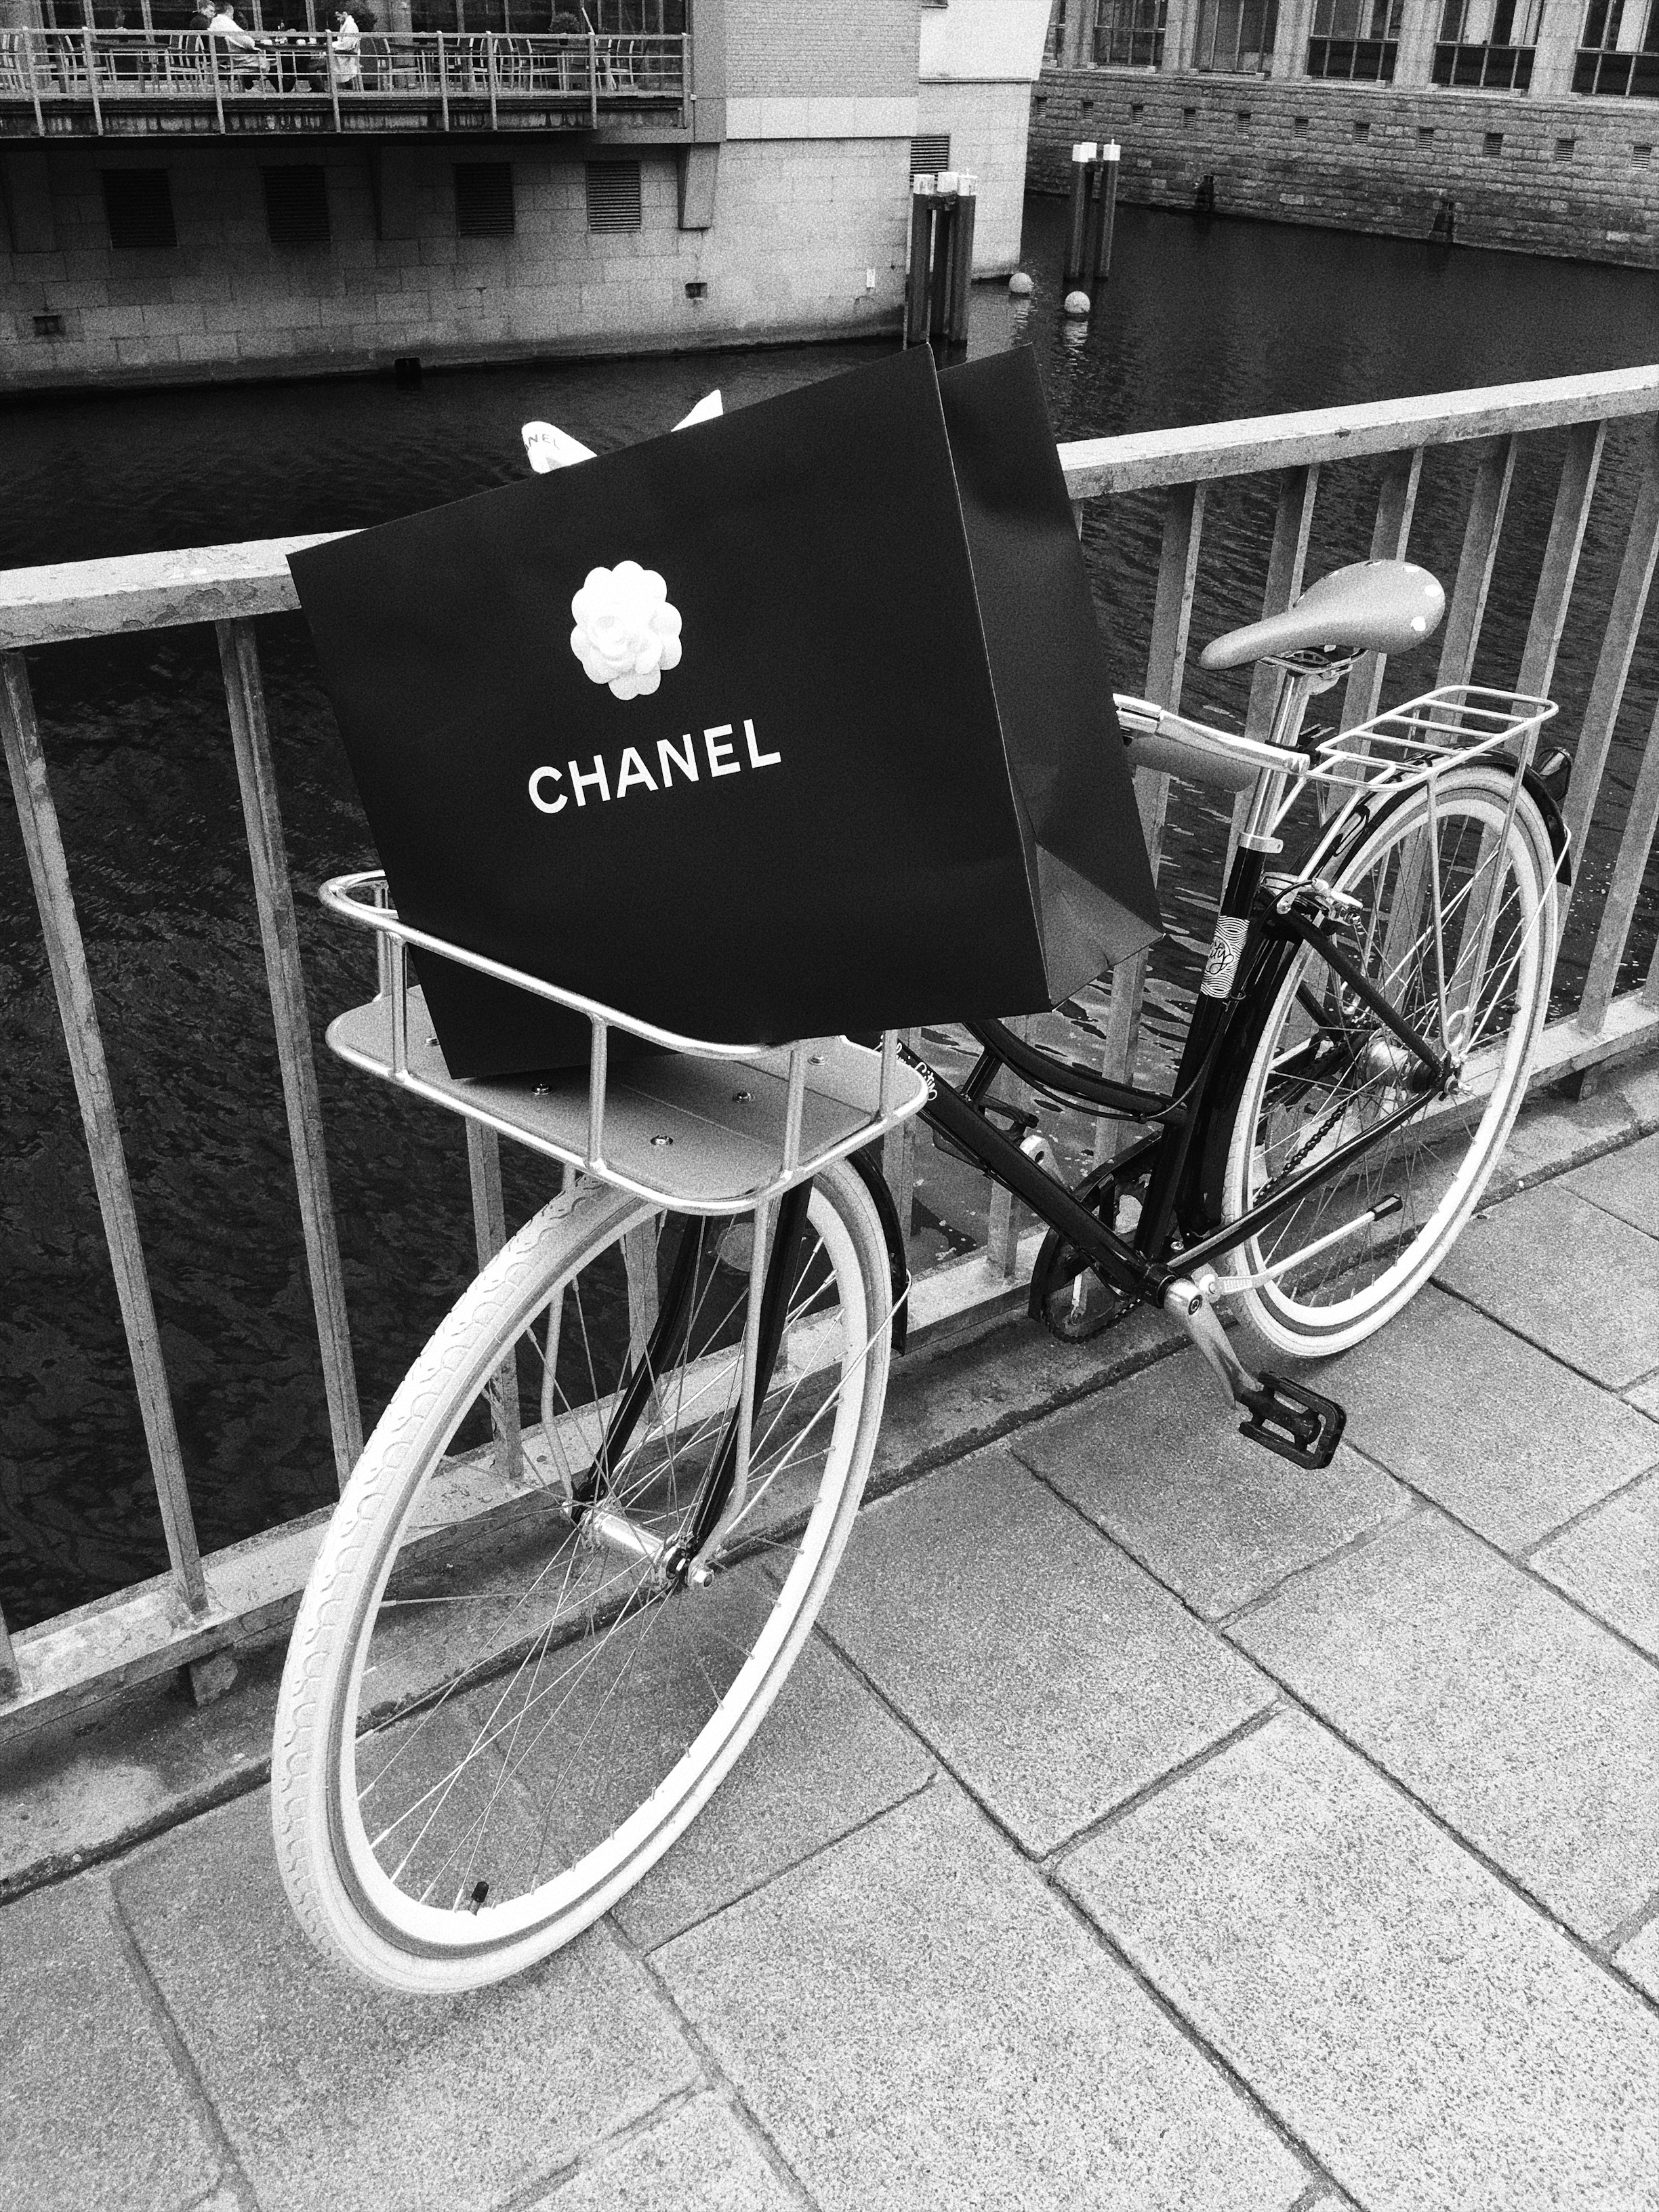 CHANEL in Hamburg by Sylvia Haghjoo